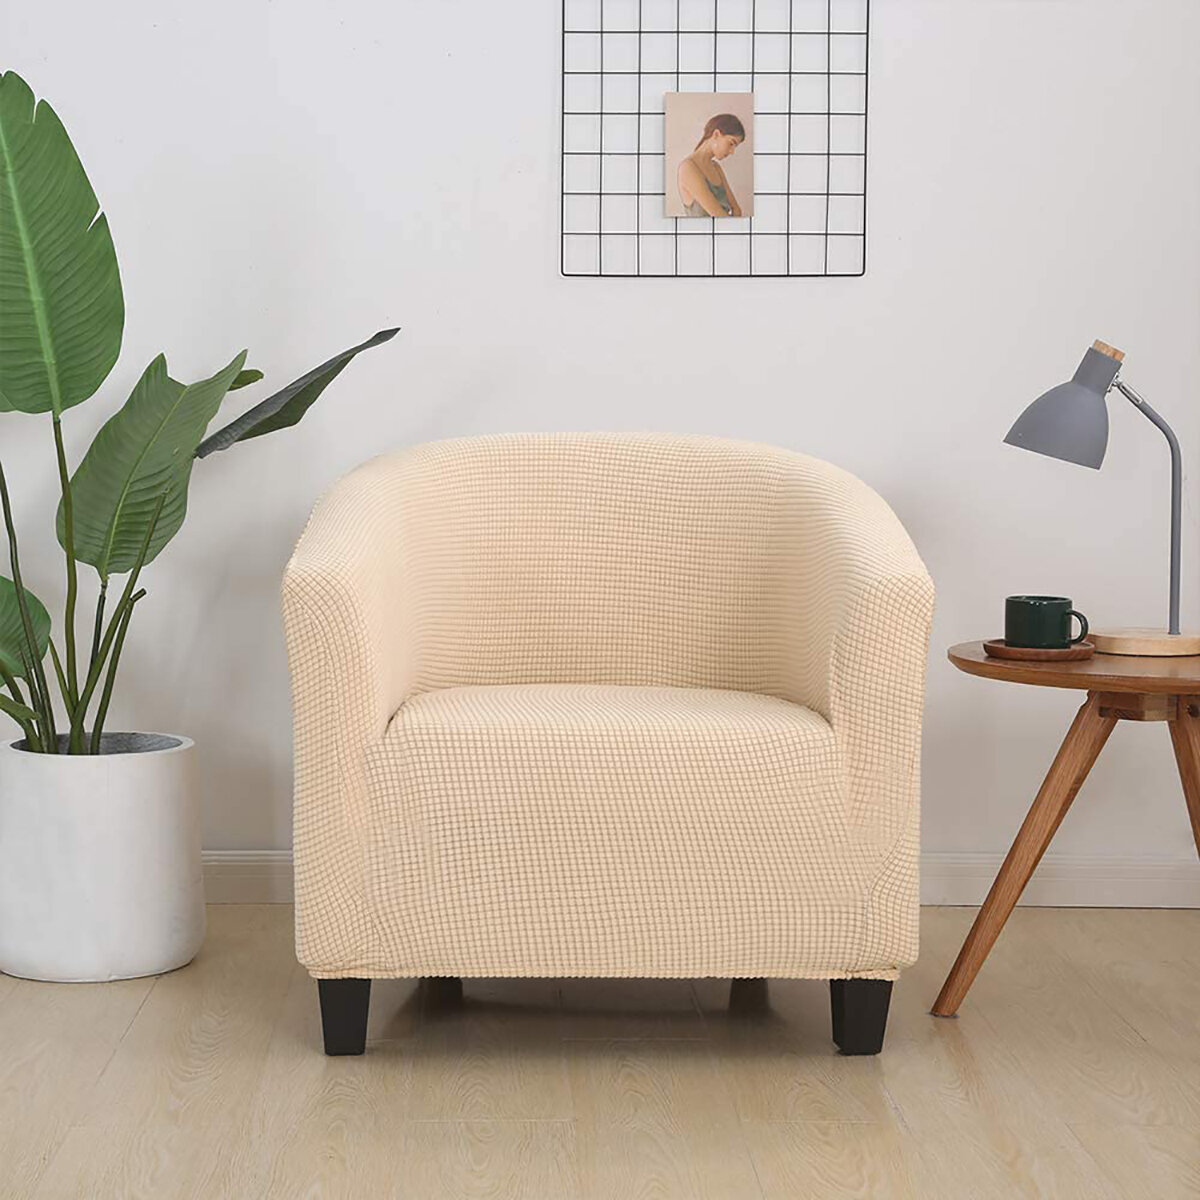 European Stretch Full-inclusive Single Sofa Cover Cafe Shop Hotel Room Solid Color Sofa Chair Cover